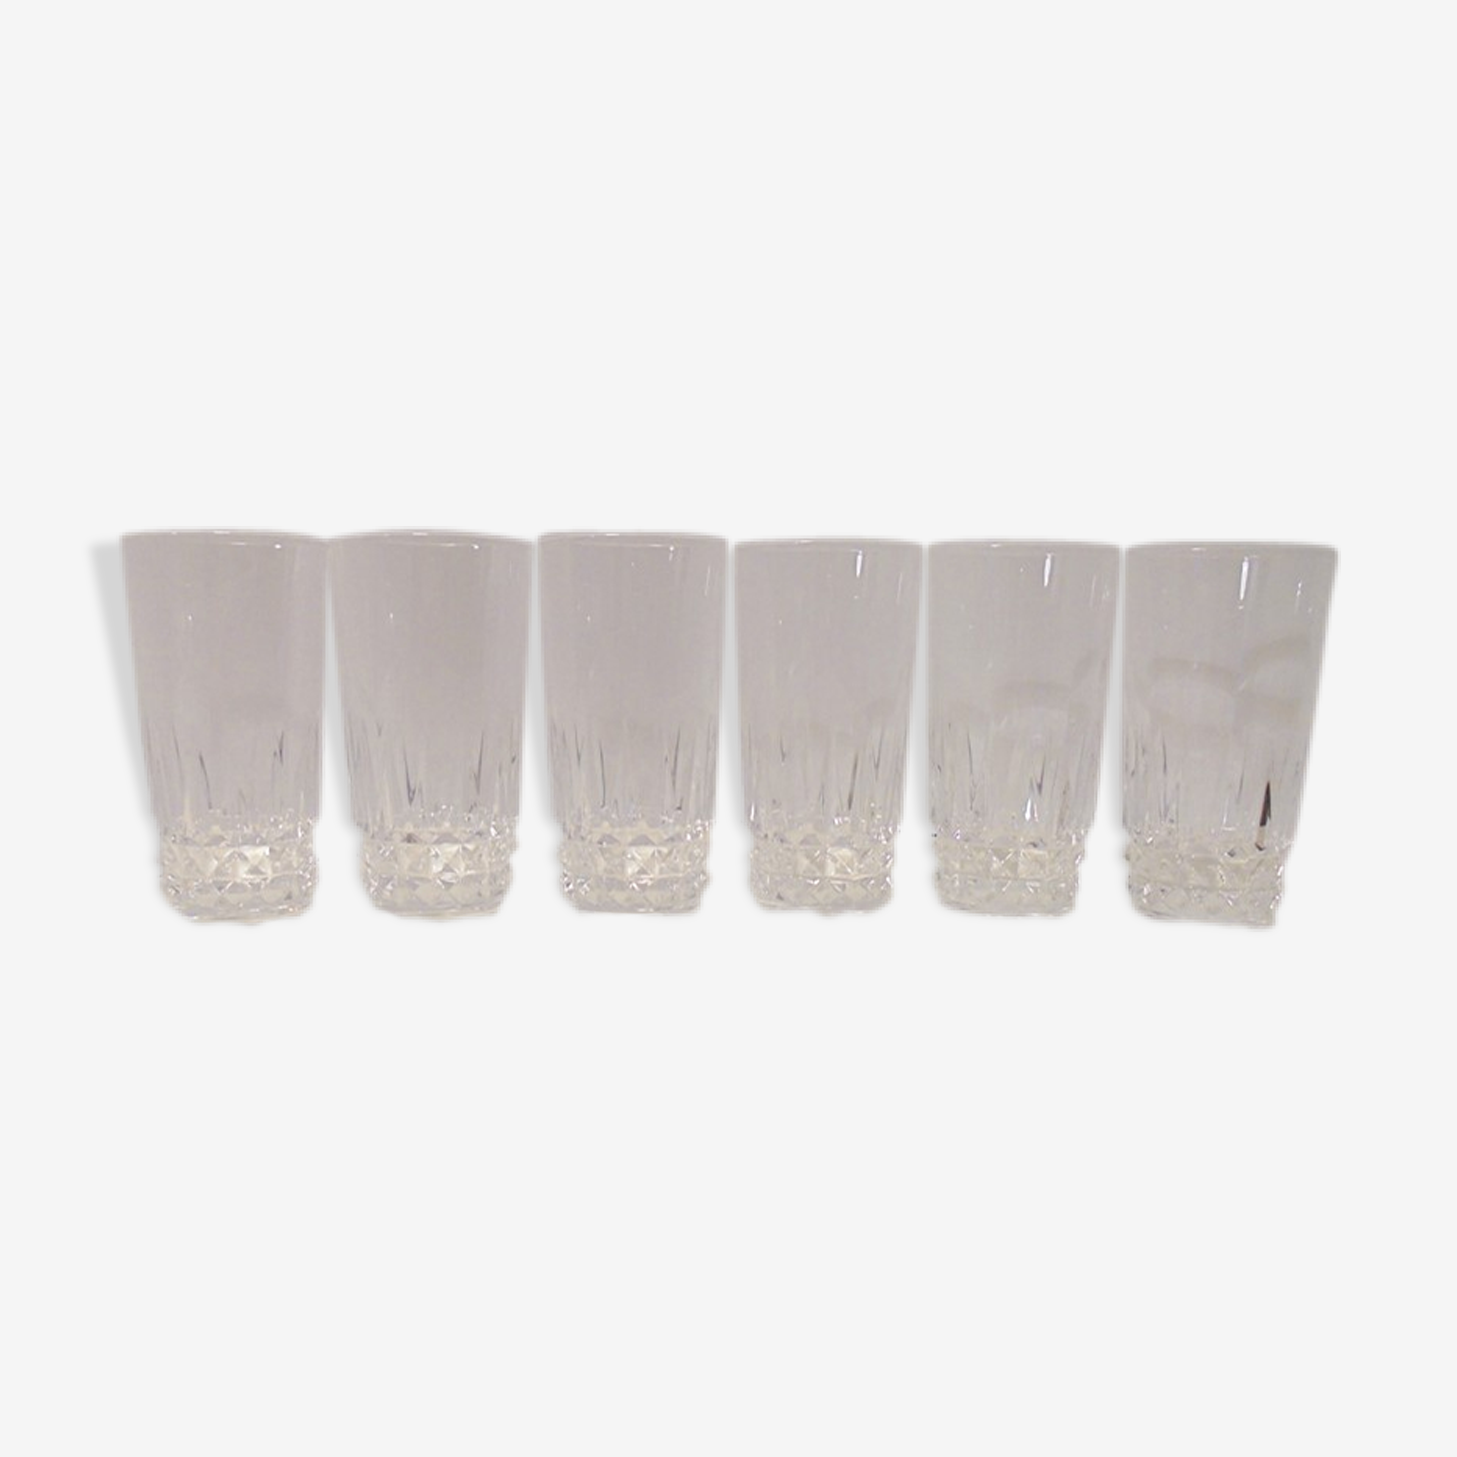 Service of 6 Crystal glasses